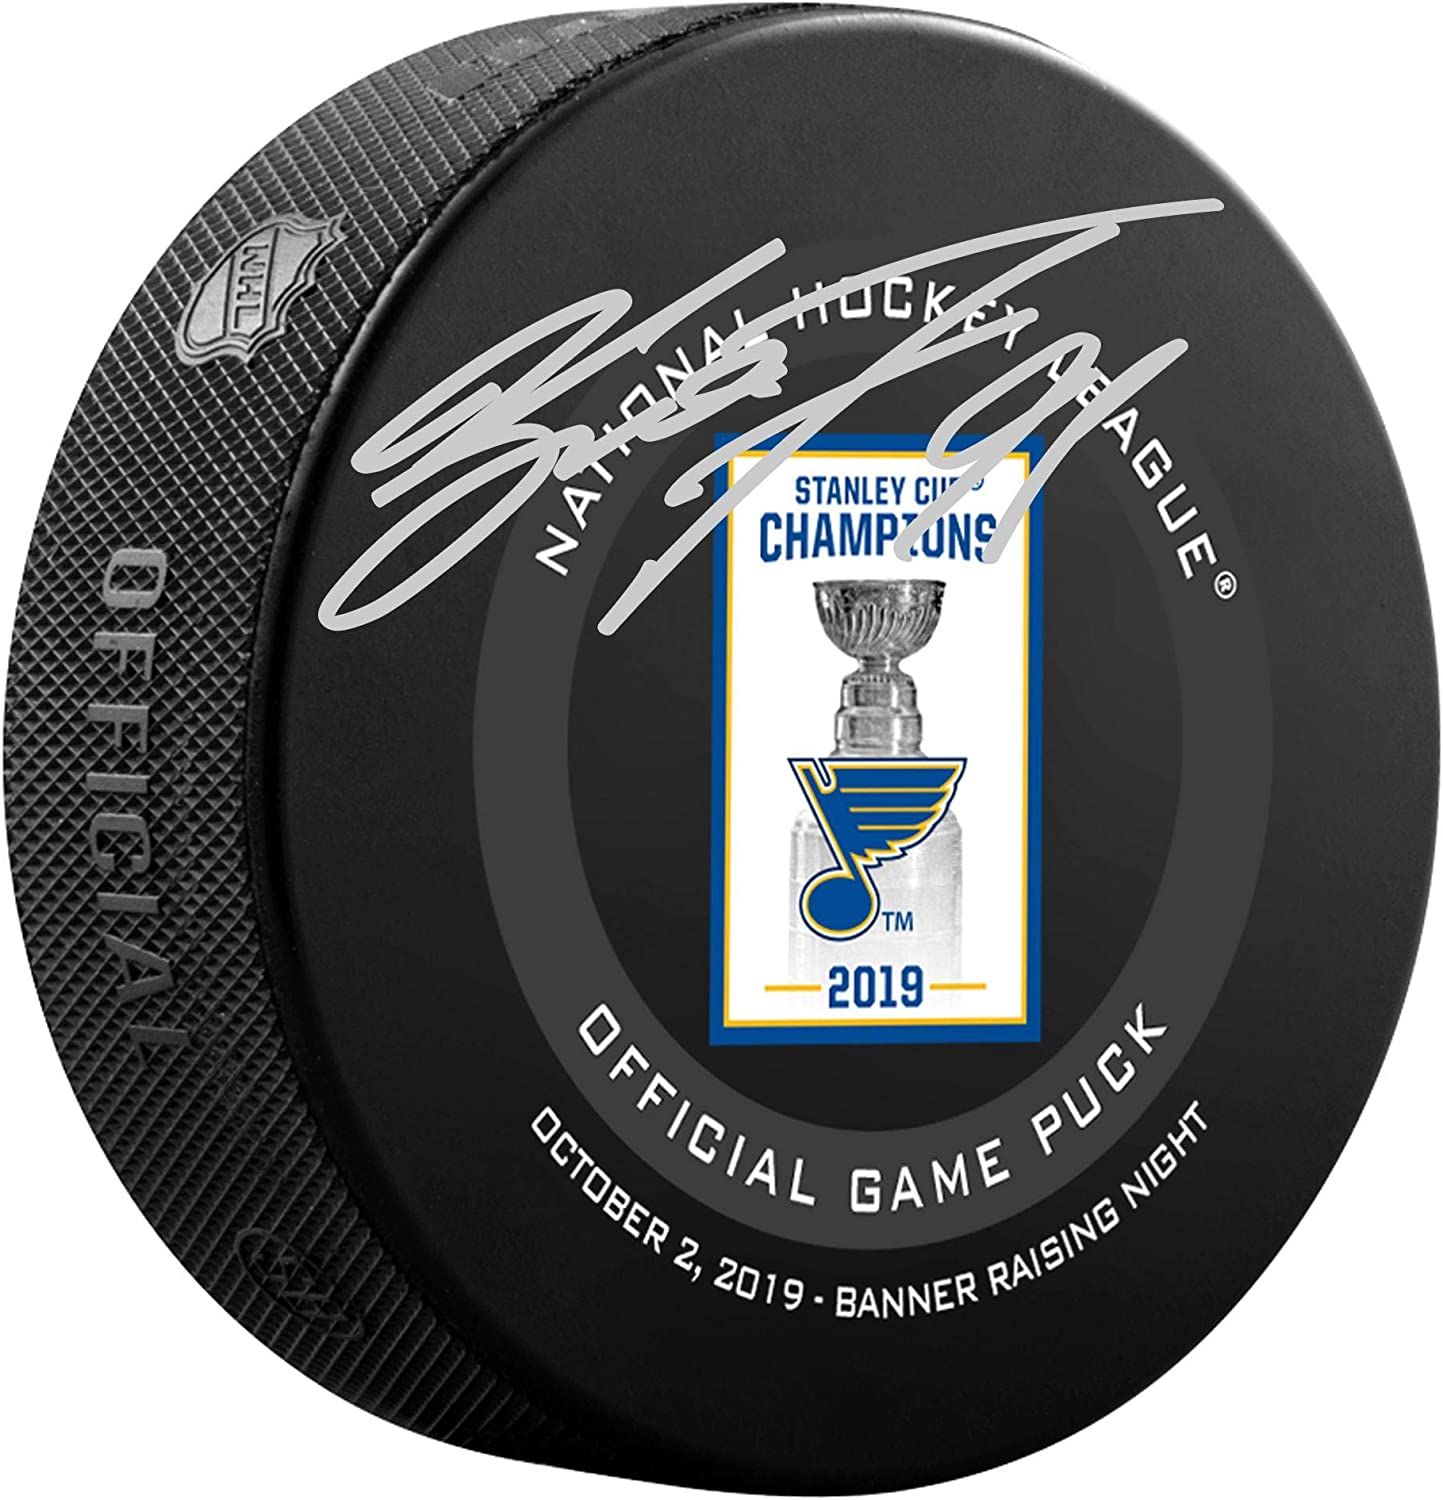 Fanatics Authentic Certified 2019 Stanley Cup Championship Banner Raising Official Game Puck Vladimir Tarasenko St Louis Blues Autographed October 2